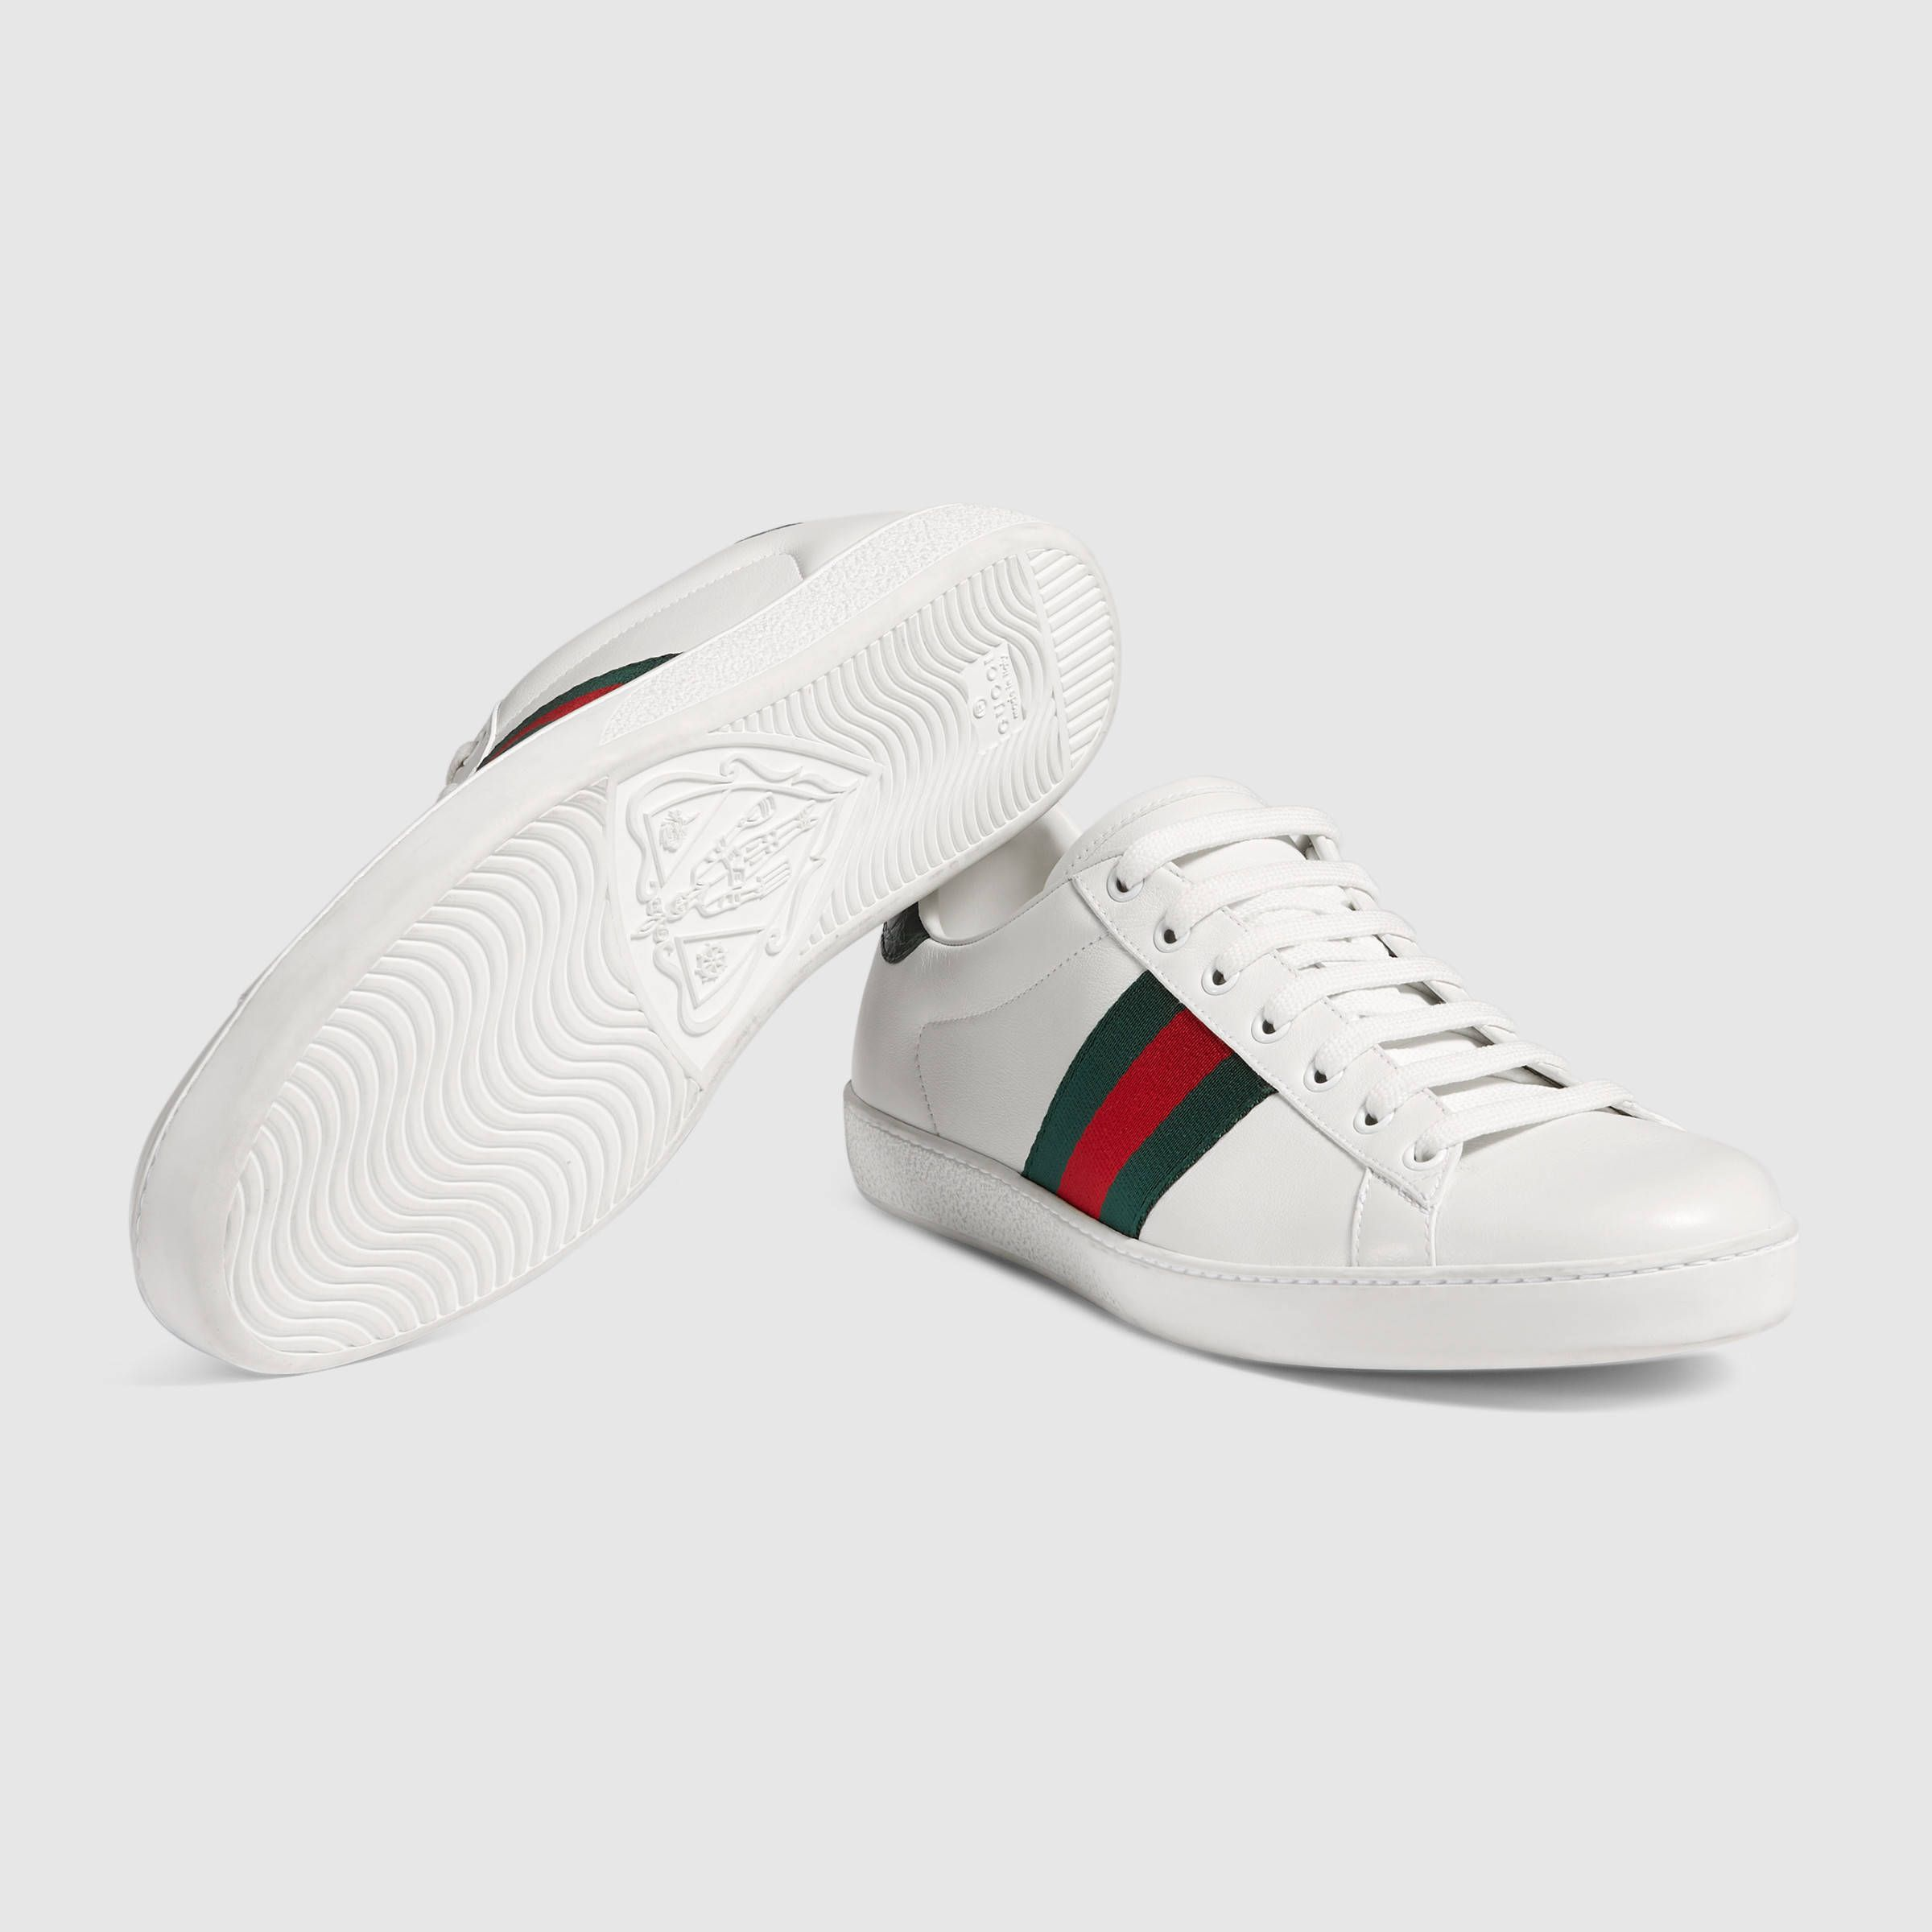 Gucci Ace leather sneaker Detail 5